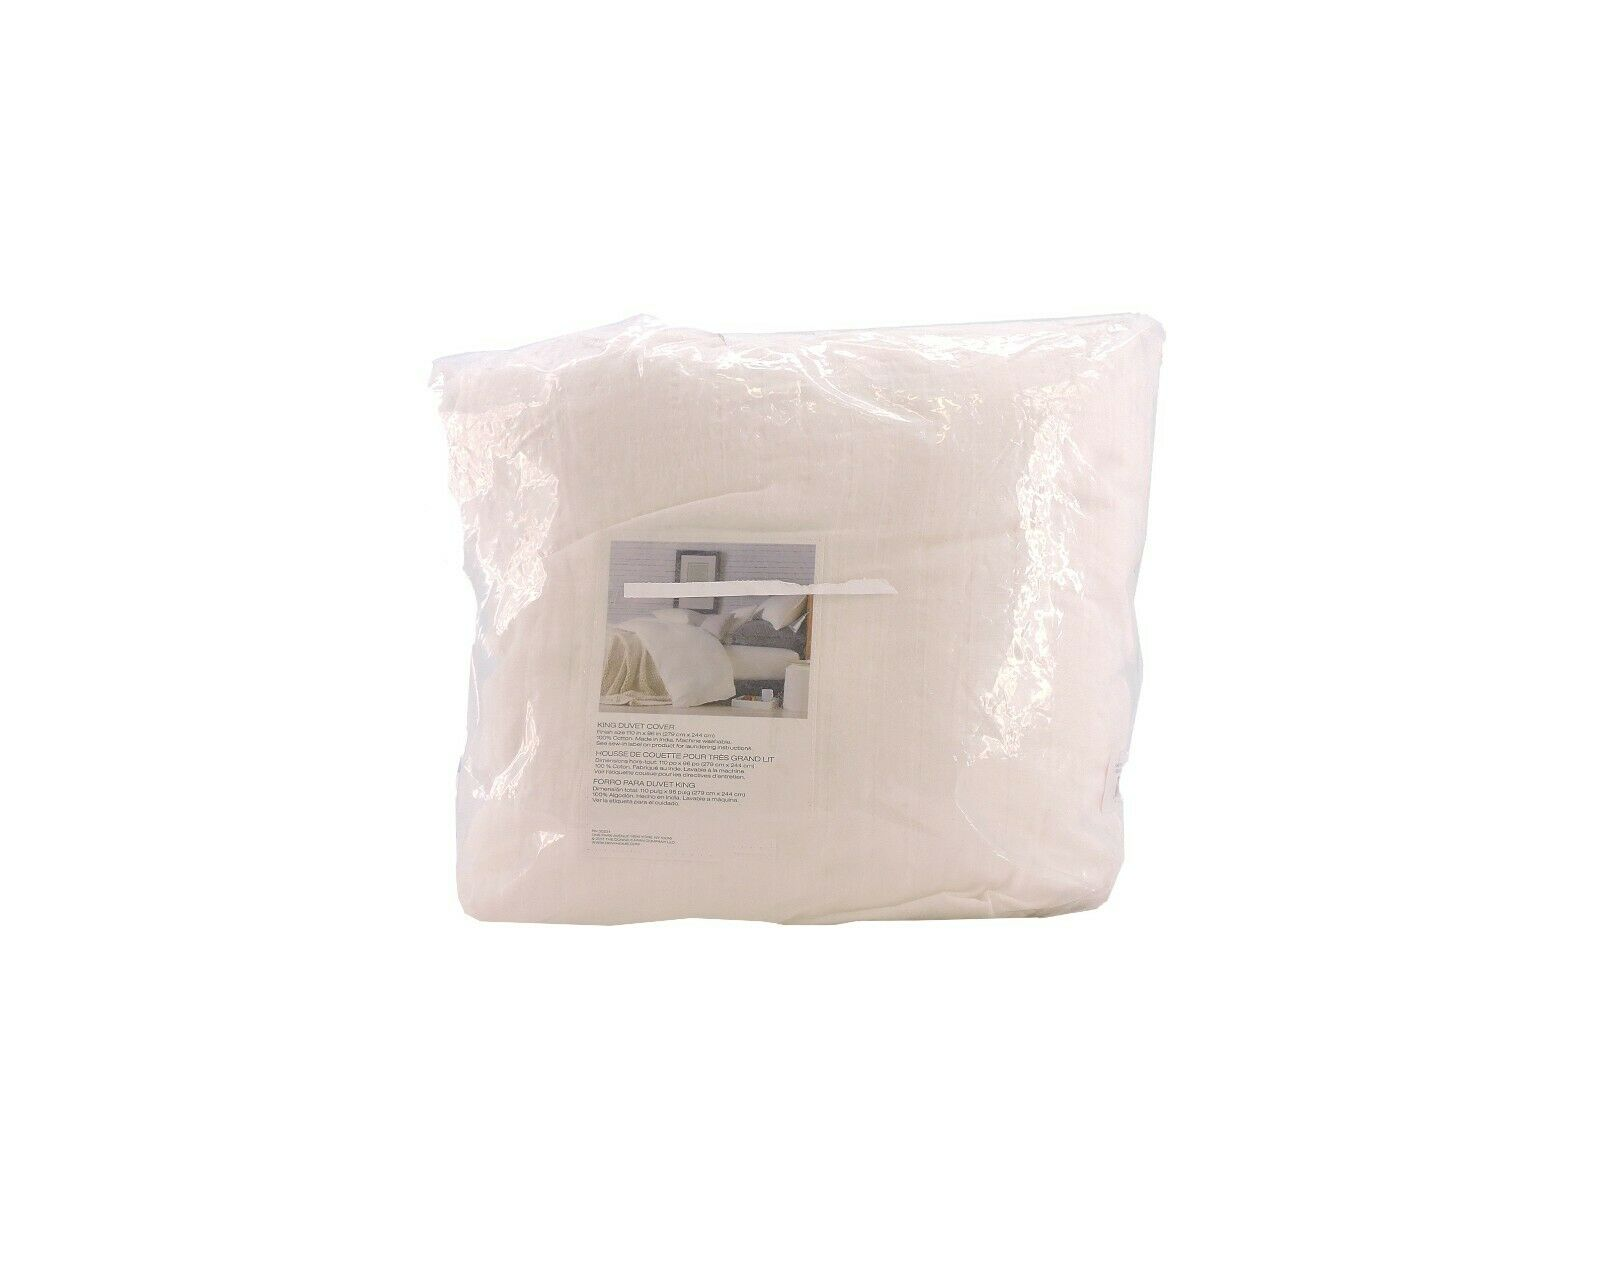 DKNYPURE(R) COMFY KING DUVET COVER IN WHITE